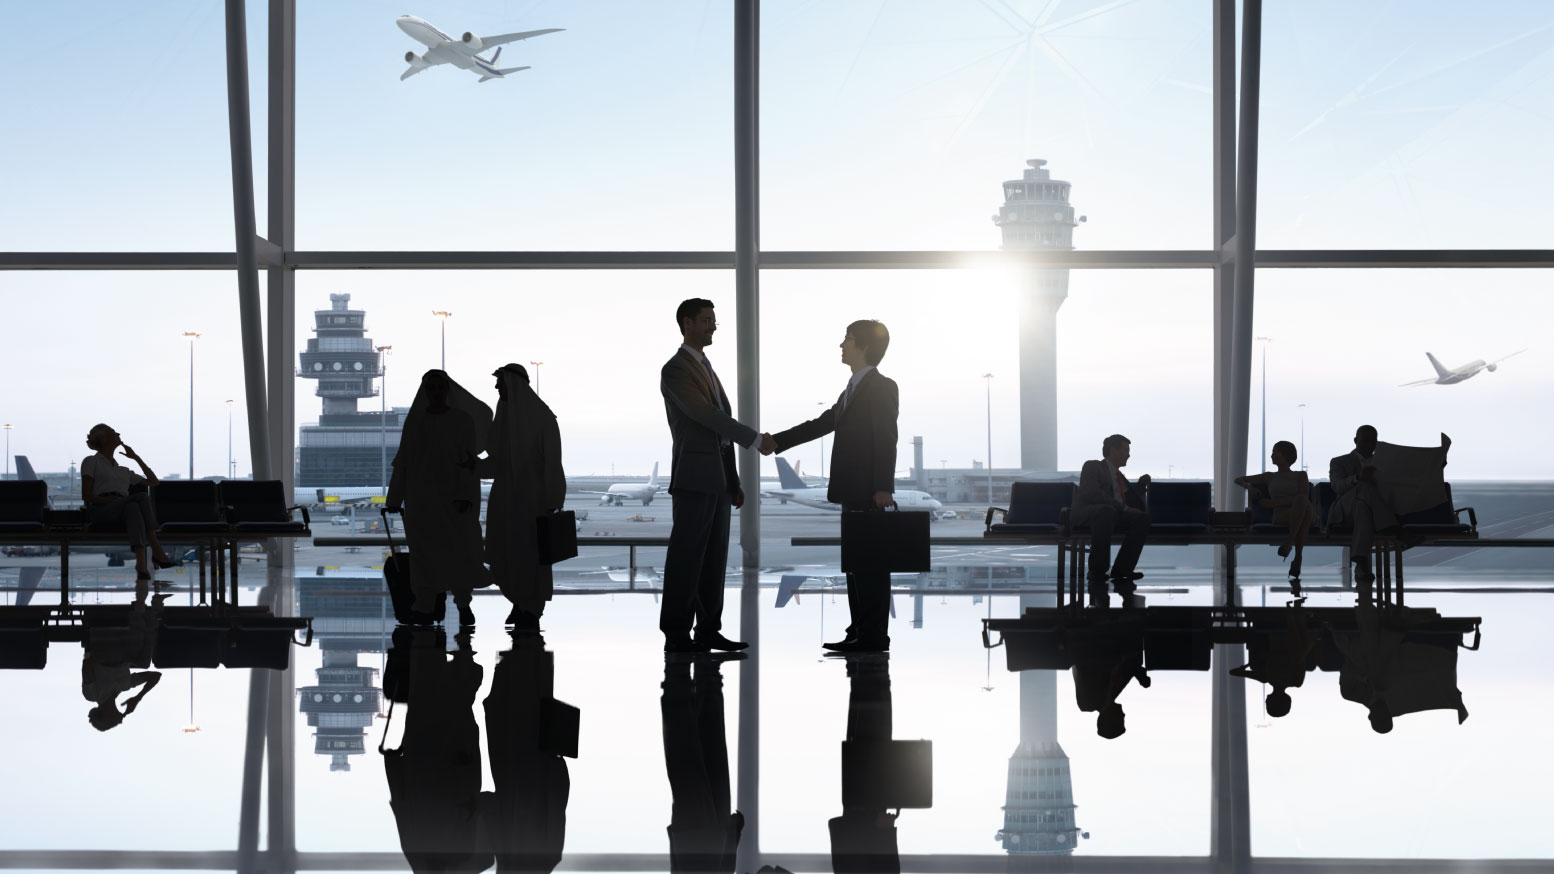 Travel and tourism business